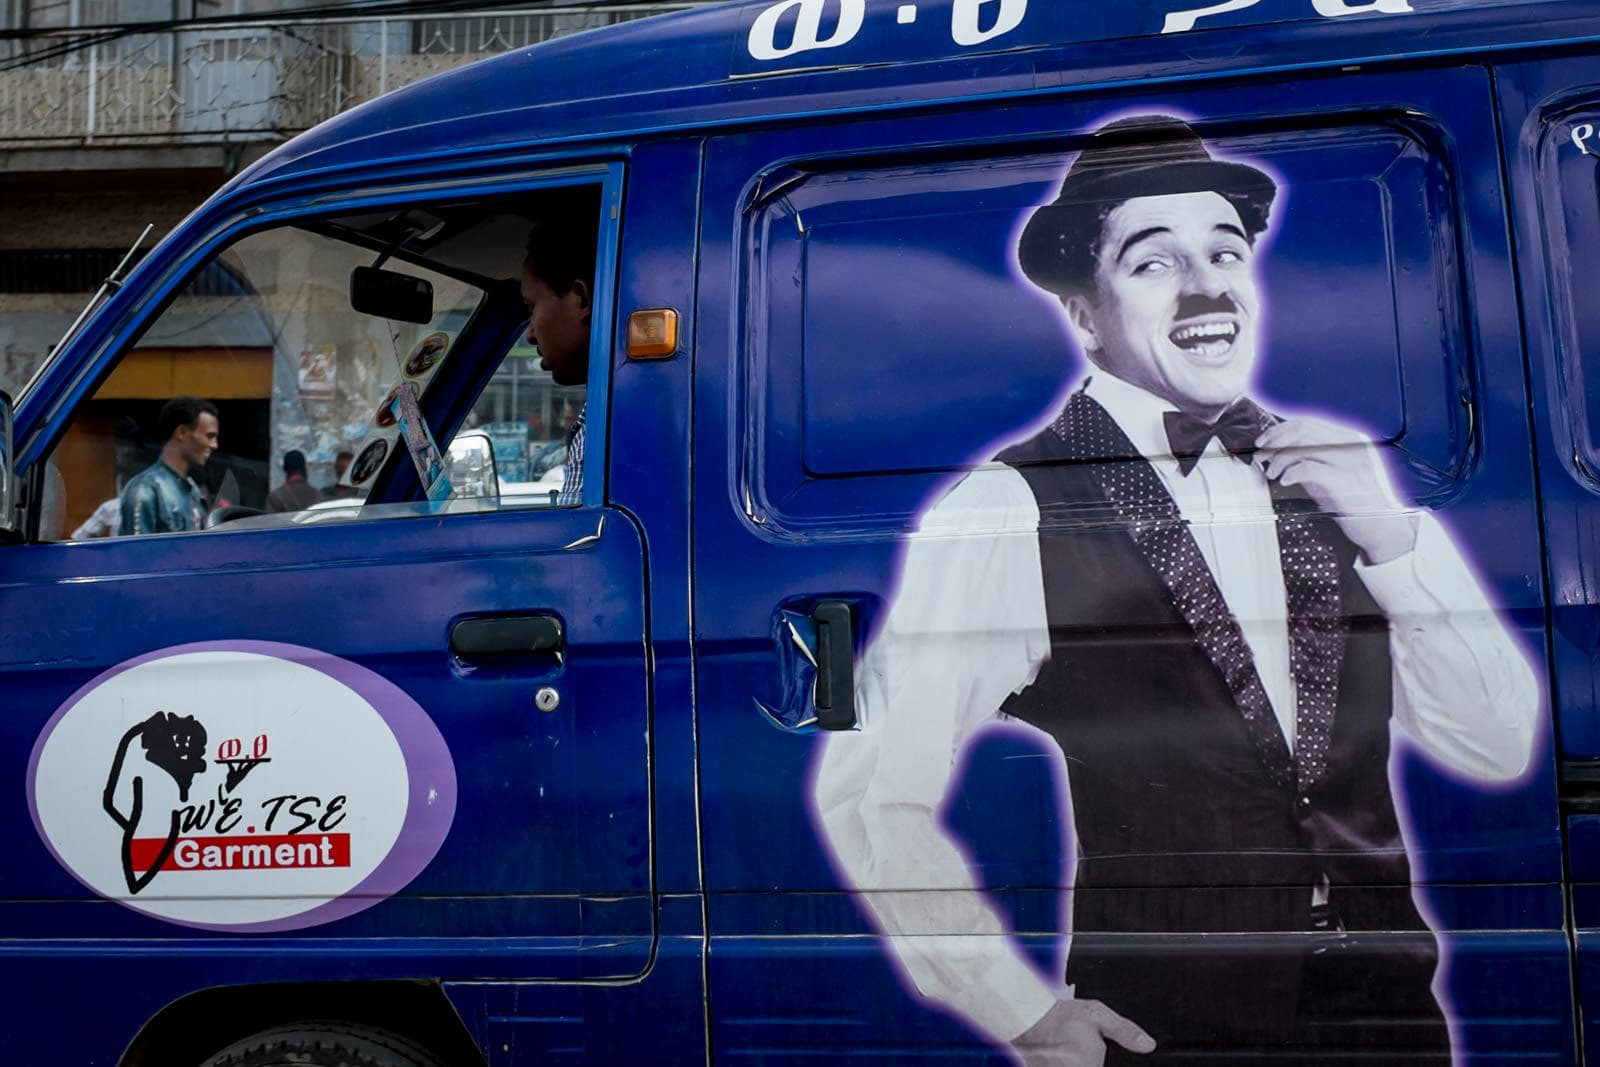 Charlie Chaplin on the side of a purple van in Addis Ababa, Ethiopia, Afriac